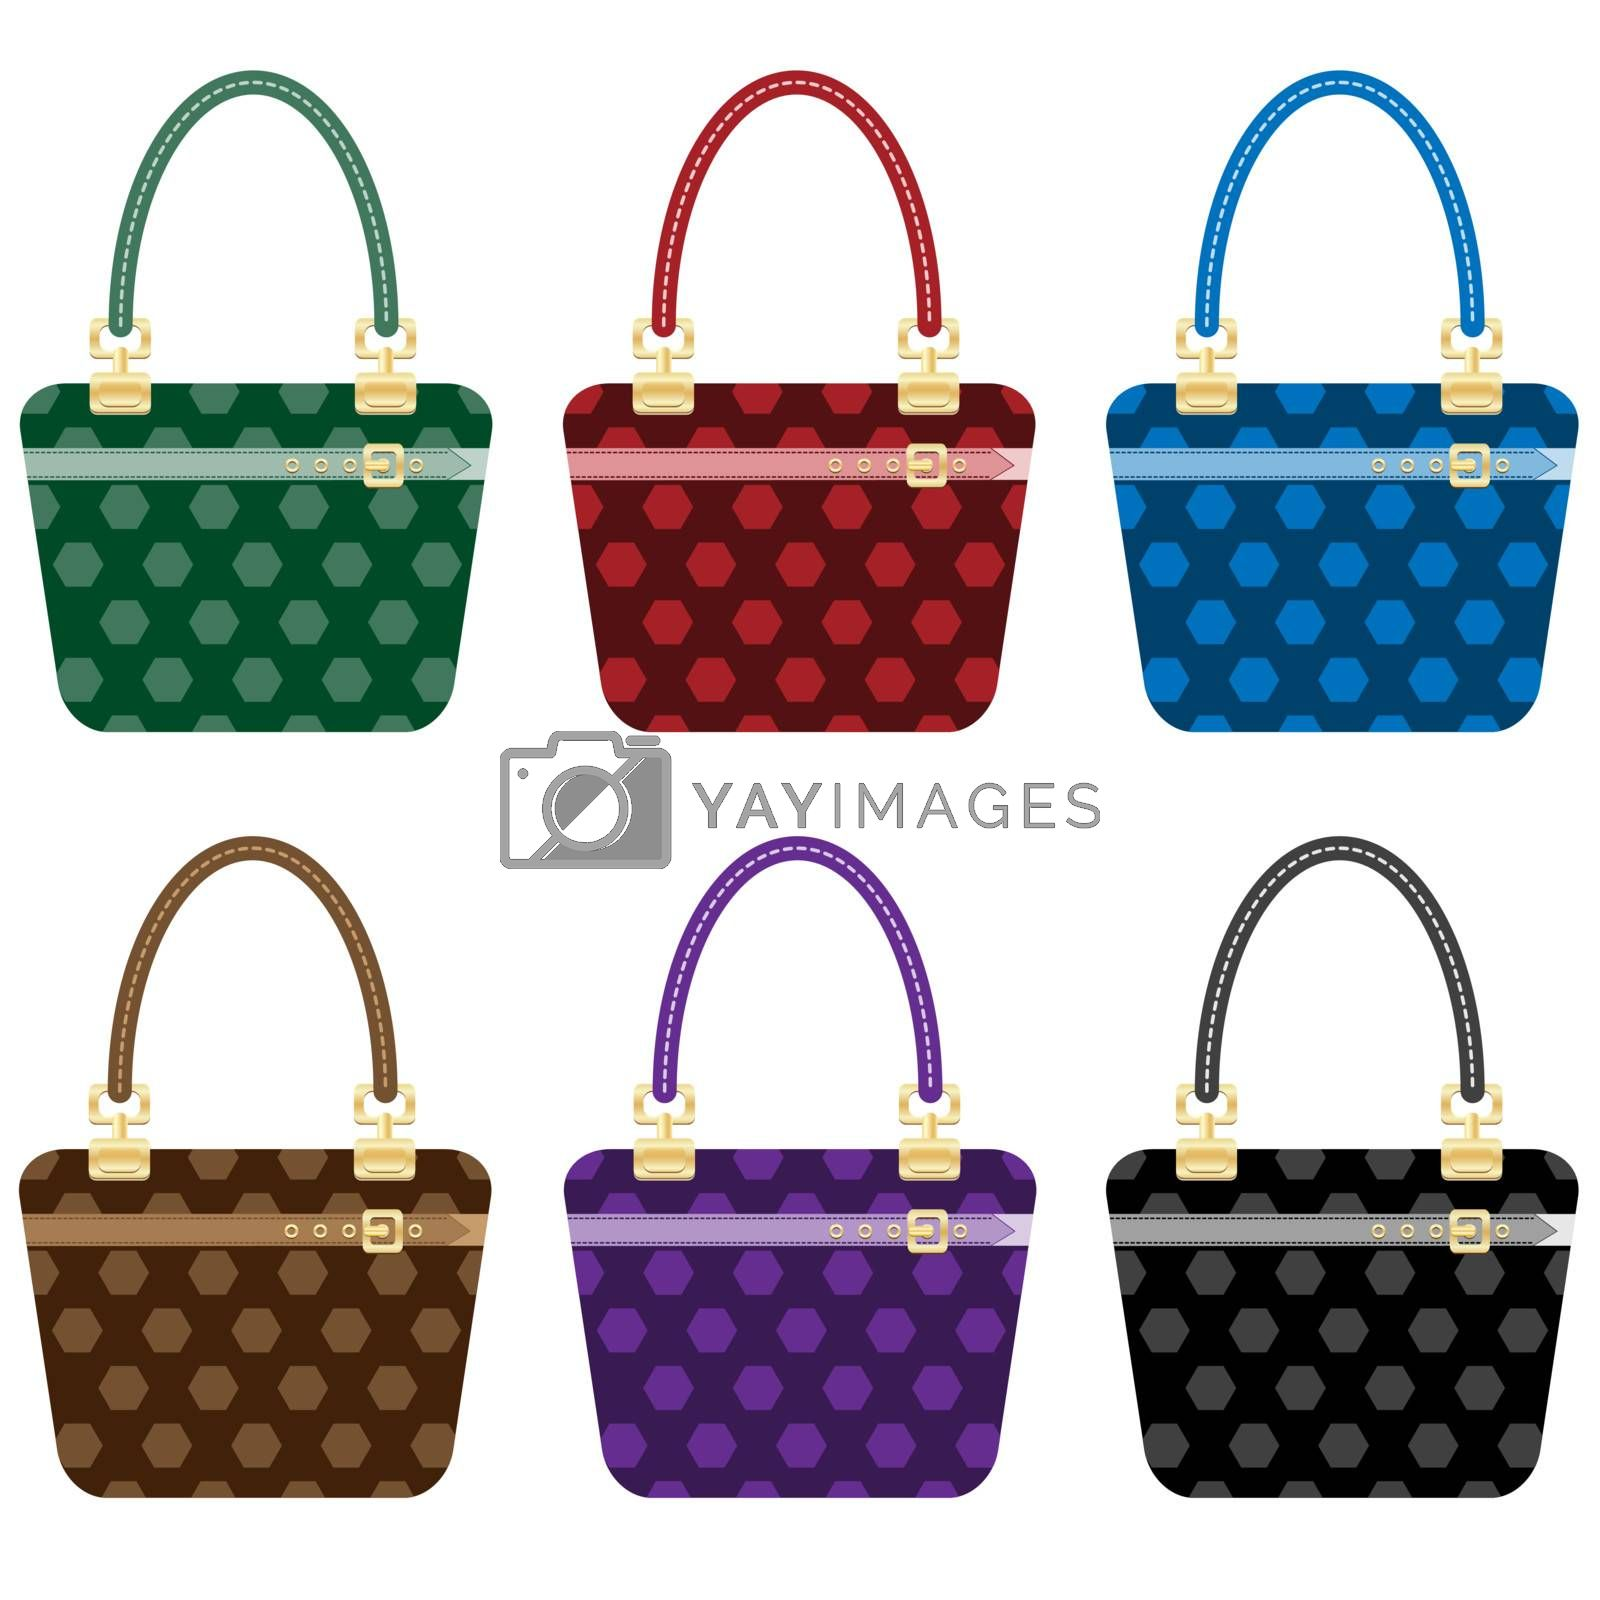 Ladies fashion handbags set in 6 colors. Isolated on white.